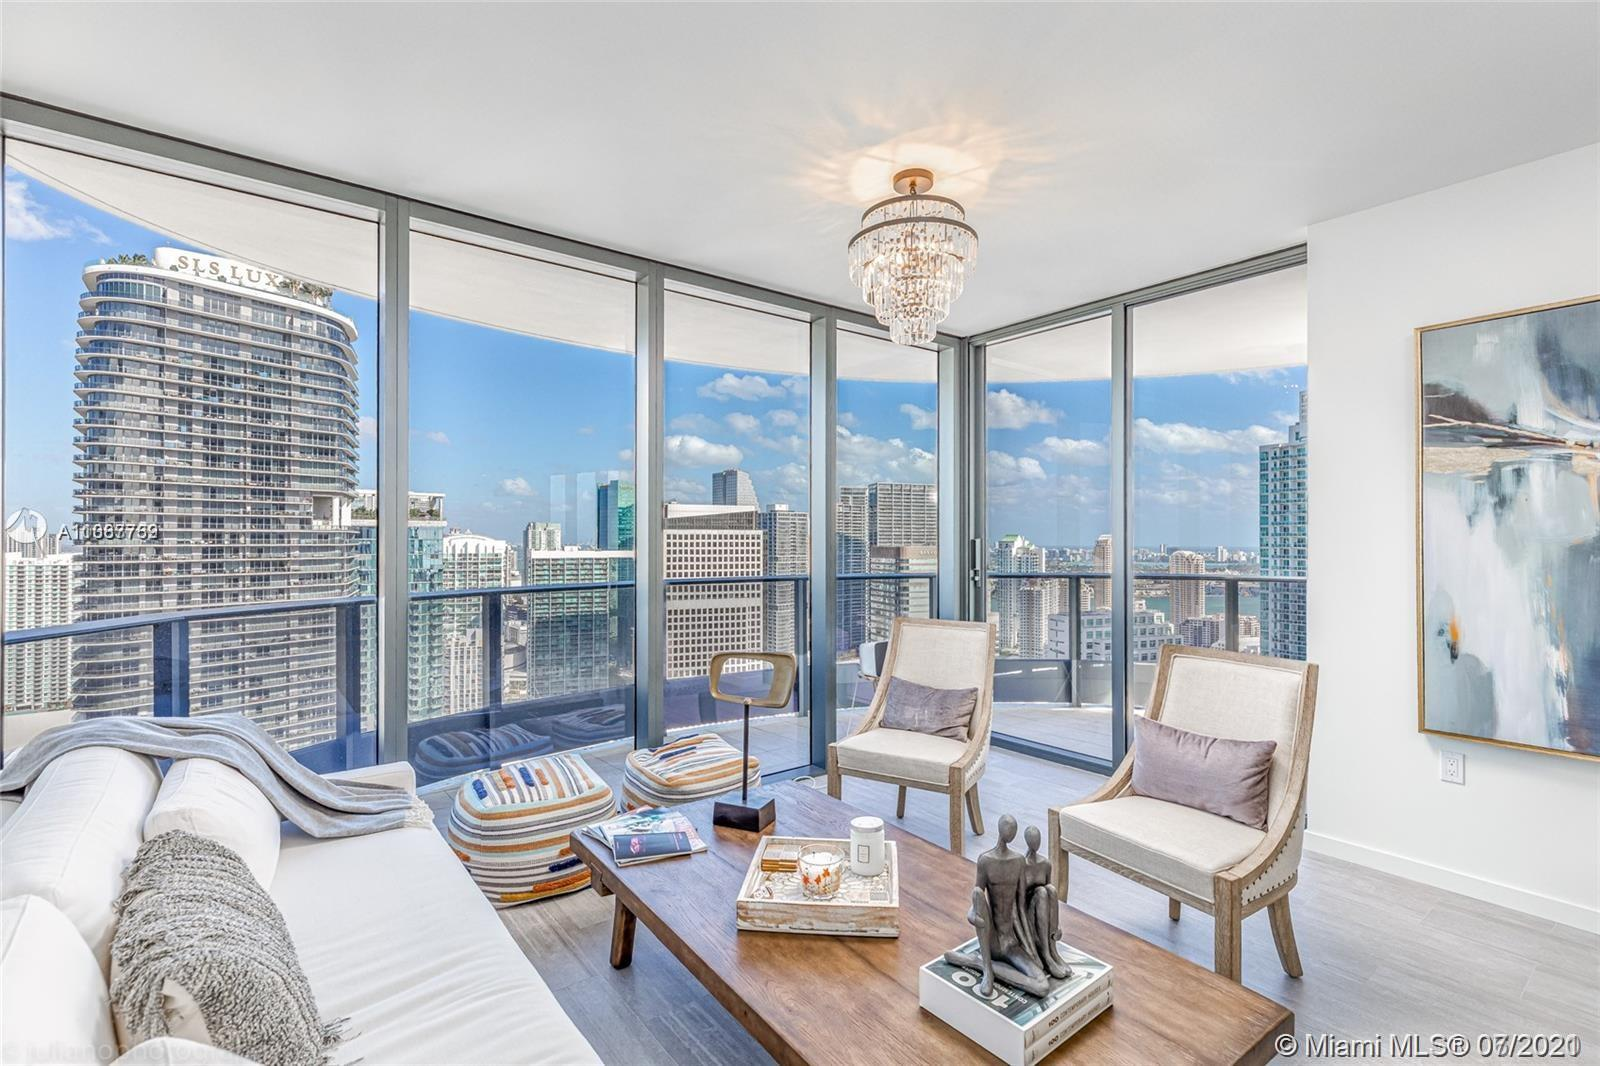 Turn key corner unit at the prestigious Brickell Flatiron. 2 Bed, 2.5 Bath + Den on over 1,400 Sq Ft. with beautiful views of the city and water. Highest quality Italian finishes throughout including Italian porcelain floors, Miele appliances and Snaidero cabinetry. Enjoy unparalleled amenities which include 64th floor rooftop pool, fitness center and spa with unobstructed views of Miami as well as a children's playroom, private movie theater and social lounge. Located in the heart of Brickell, residents are ideally situated within walking distance of Mary Brickell Village and Brickell City Centre which host the finest restaurants and shopping.